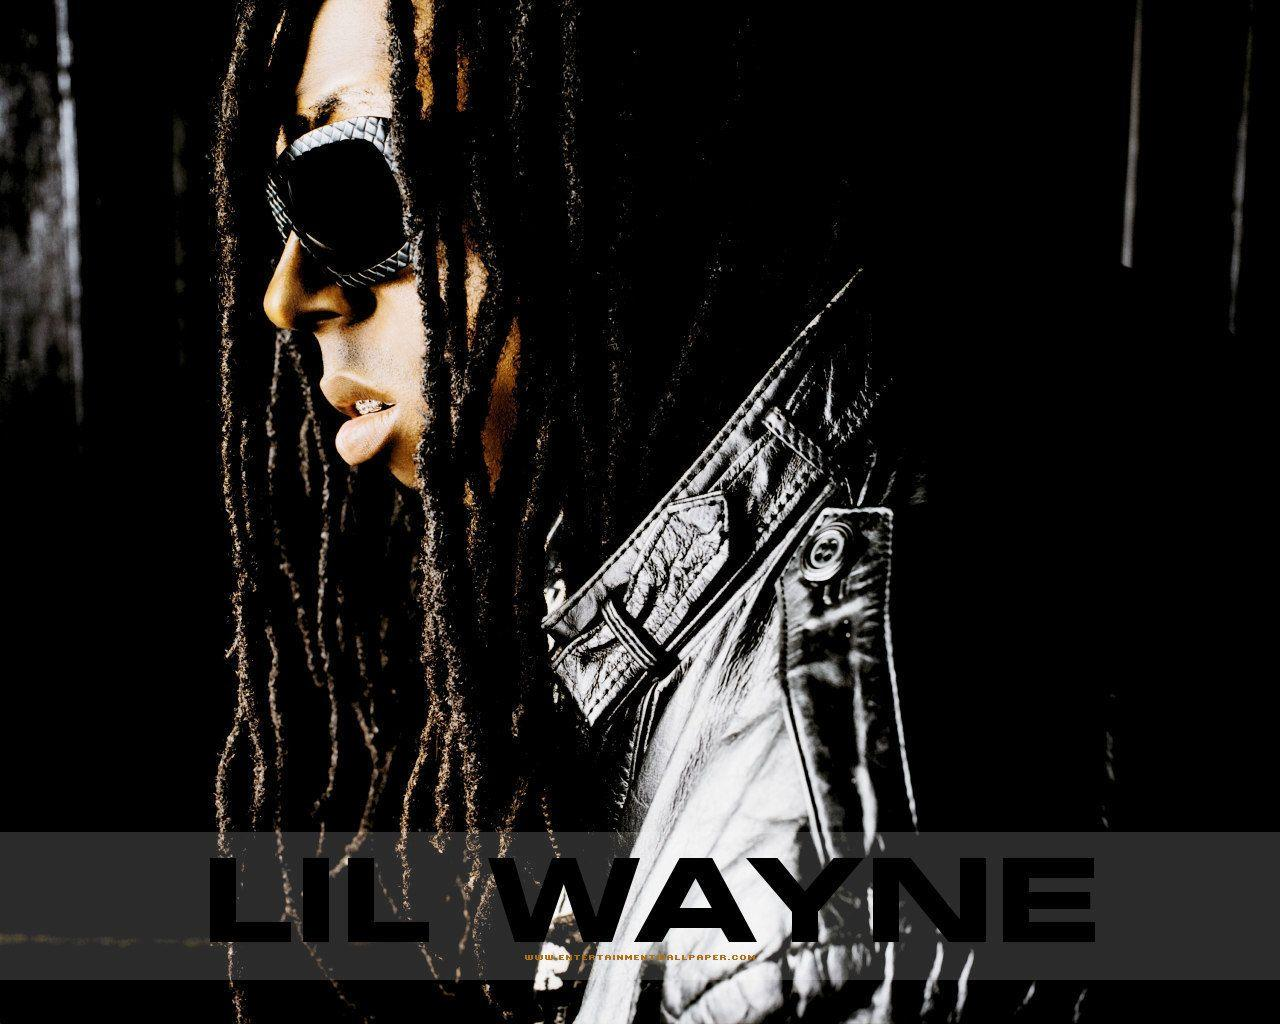 Lil Wayne 2017 Wallpapers - Wallpaper Cave